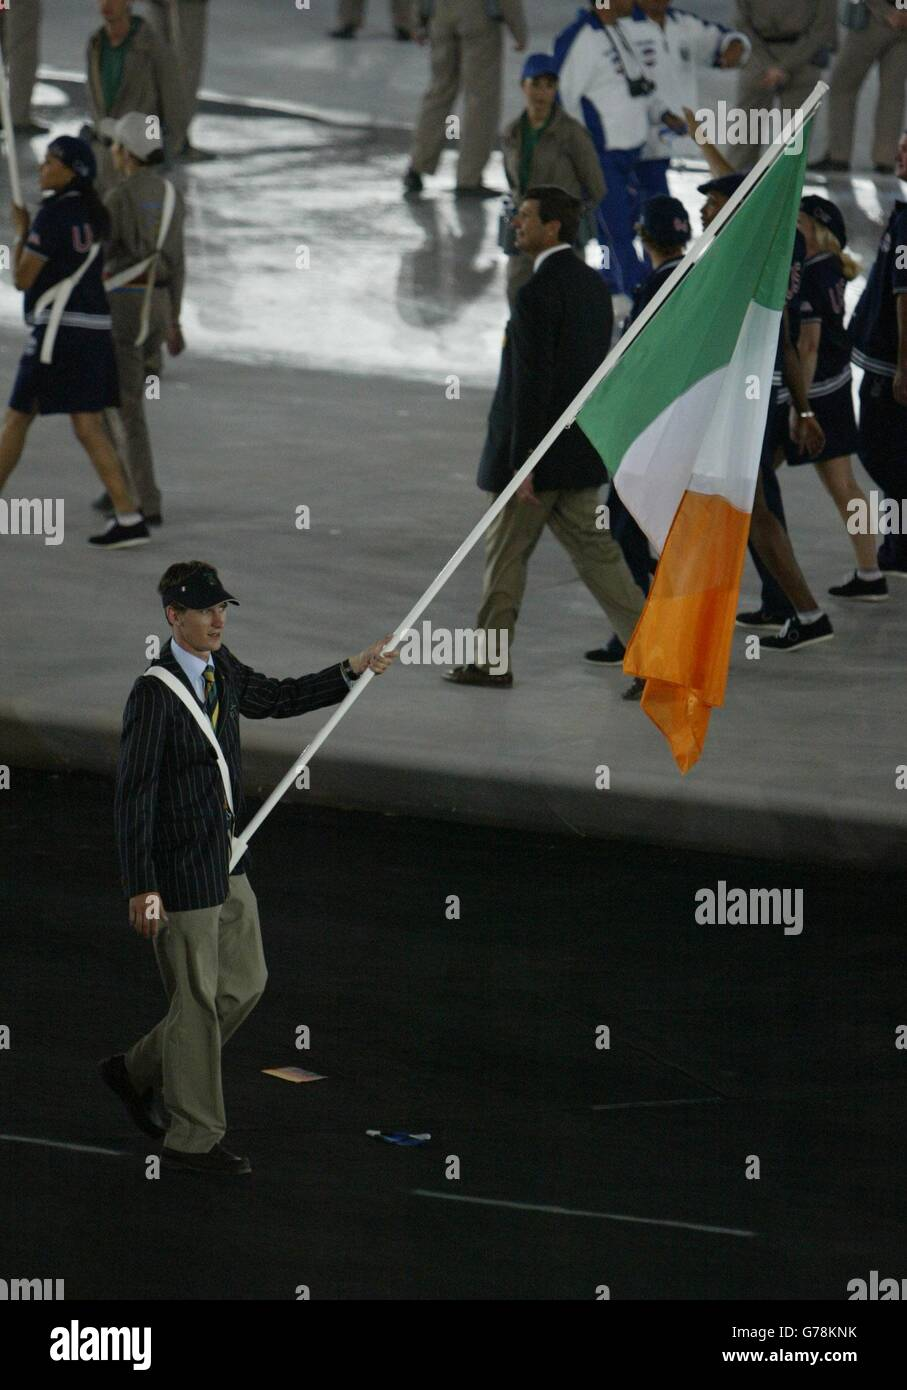 Uncategorized Niall Games niall griffin olympic games opening ceremony stock photo royalty ceremony